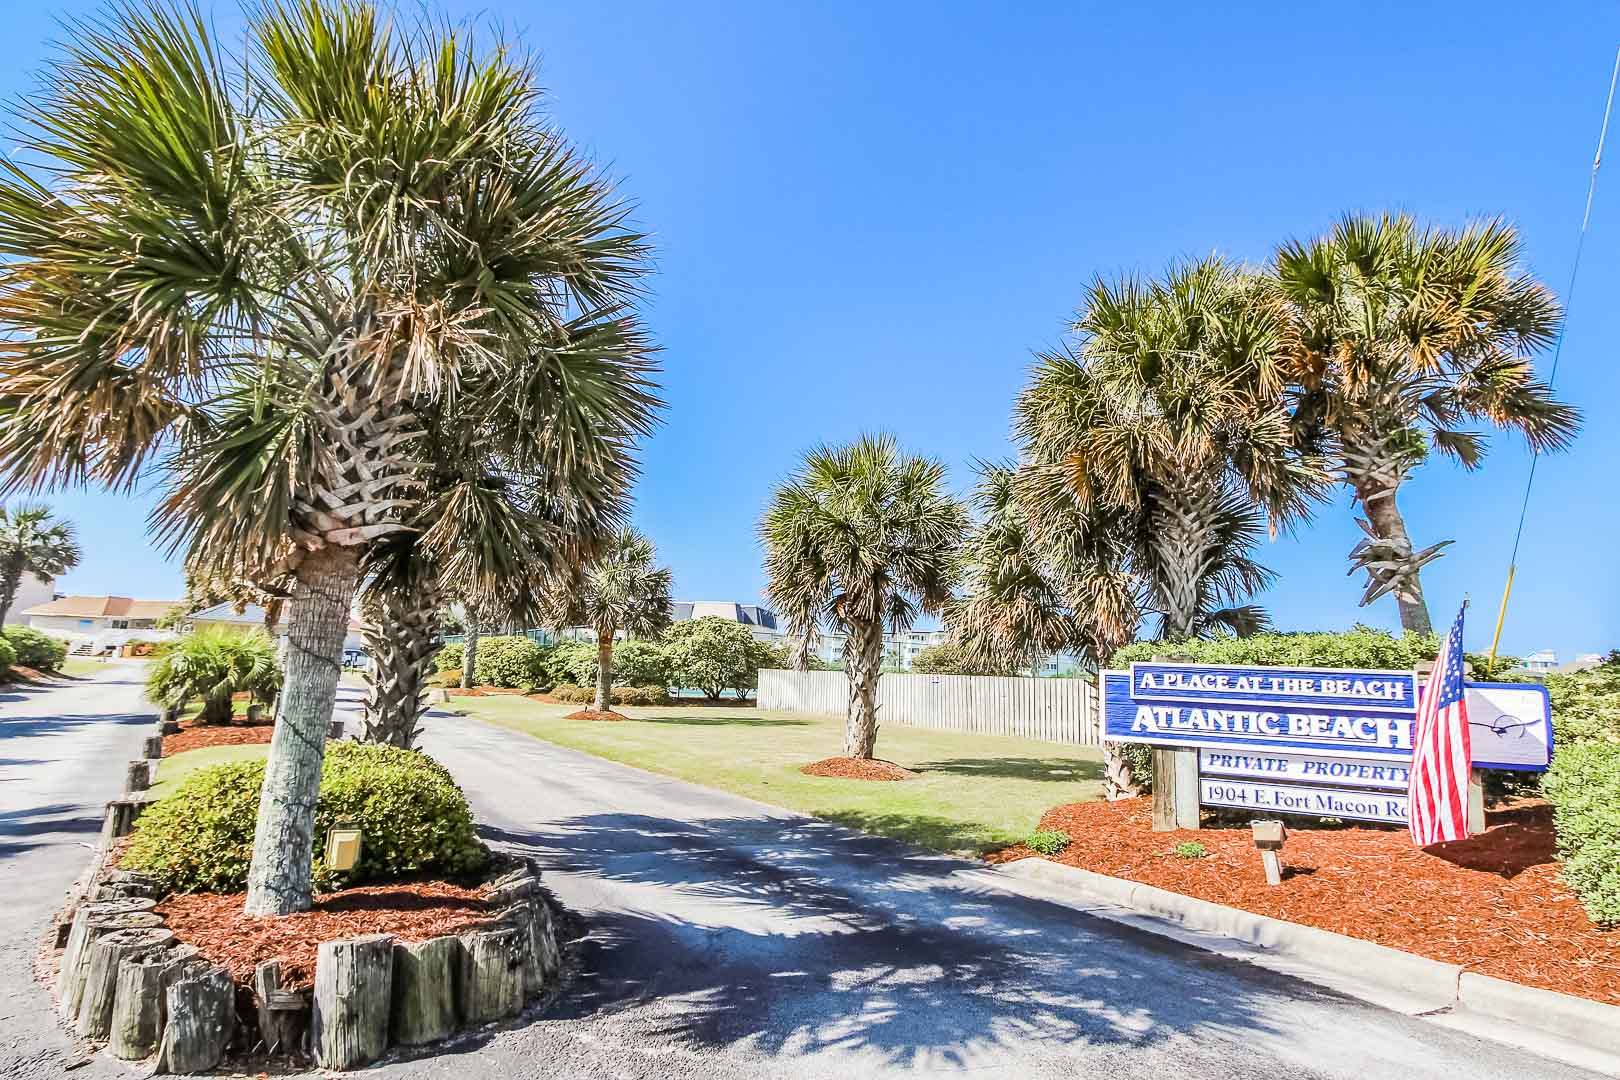 The inviting resort entrance at A Place at VRI's A the Beach III in North Carolina